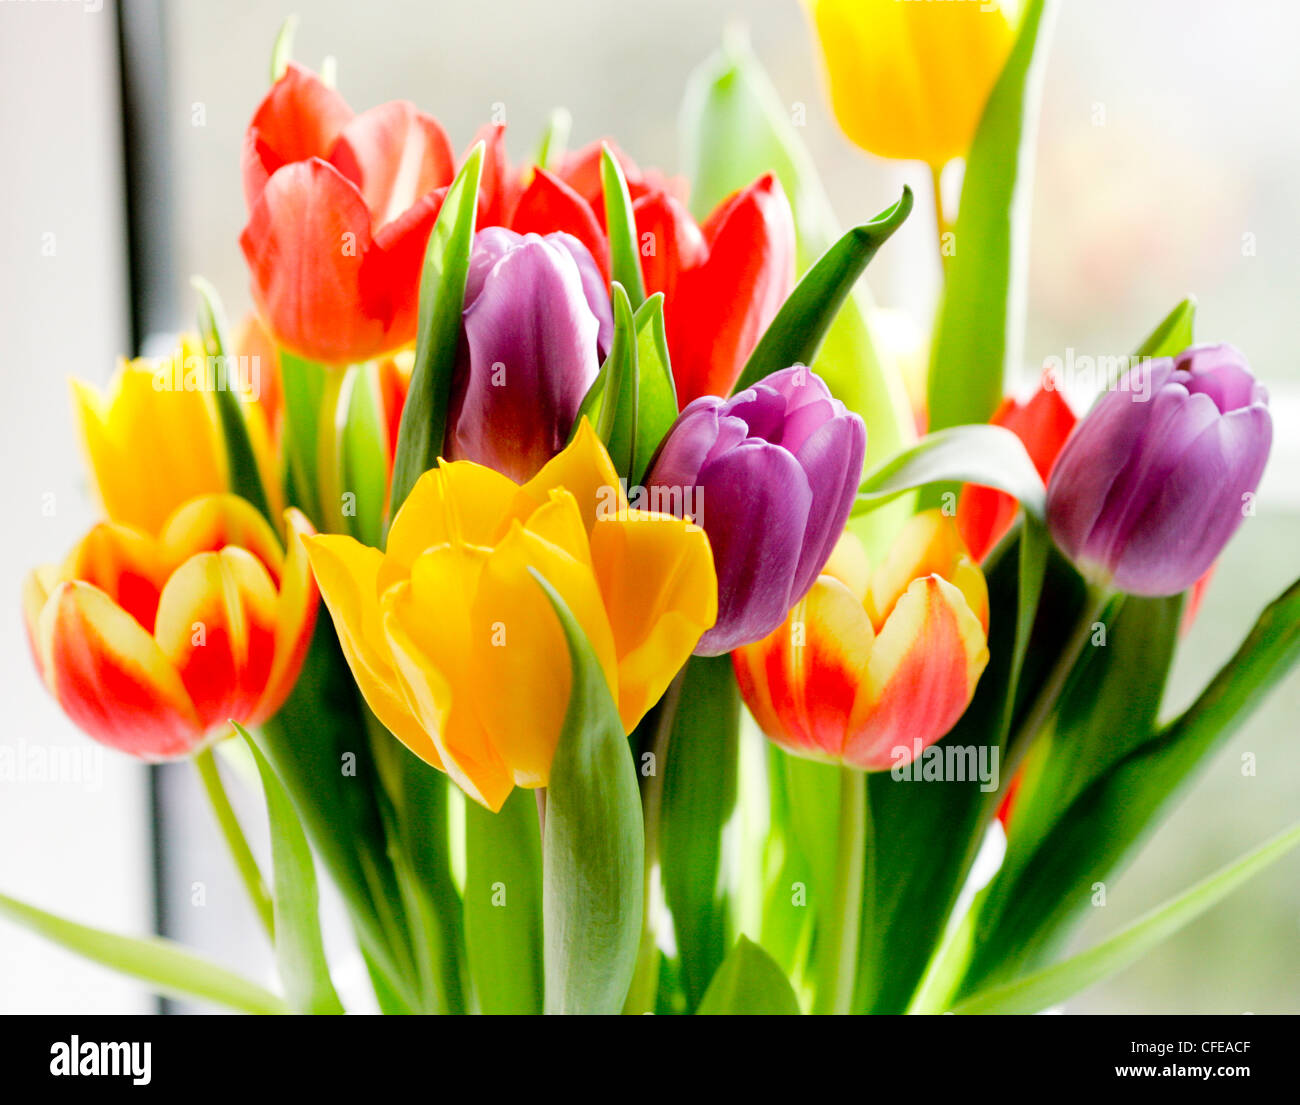 colorful flowers tulips - Stock Image